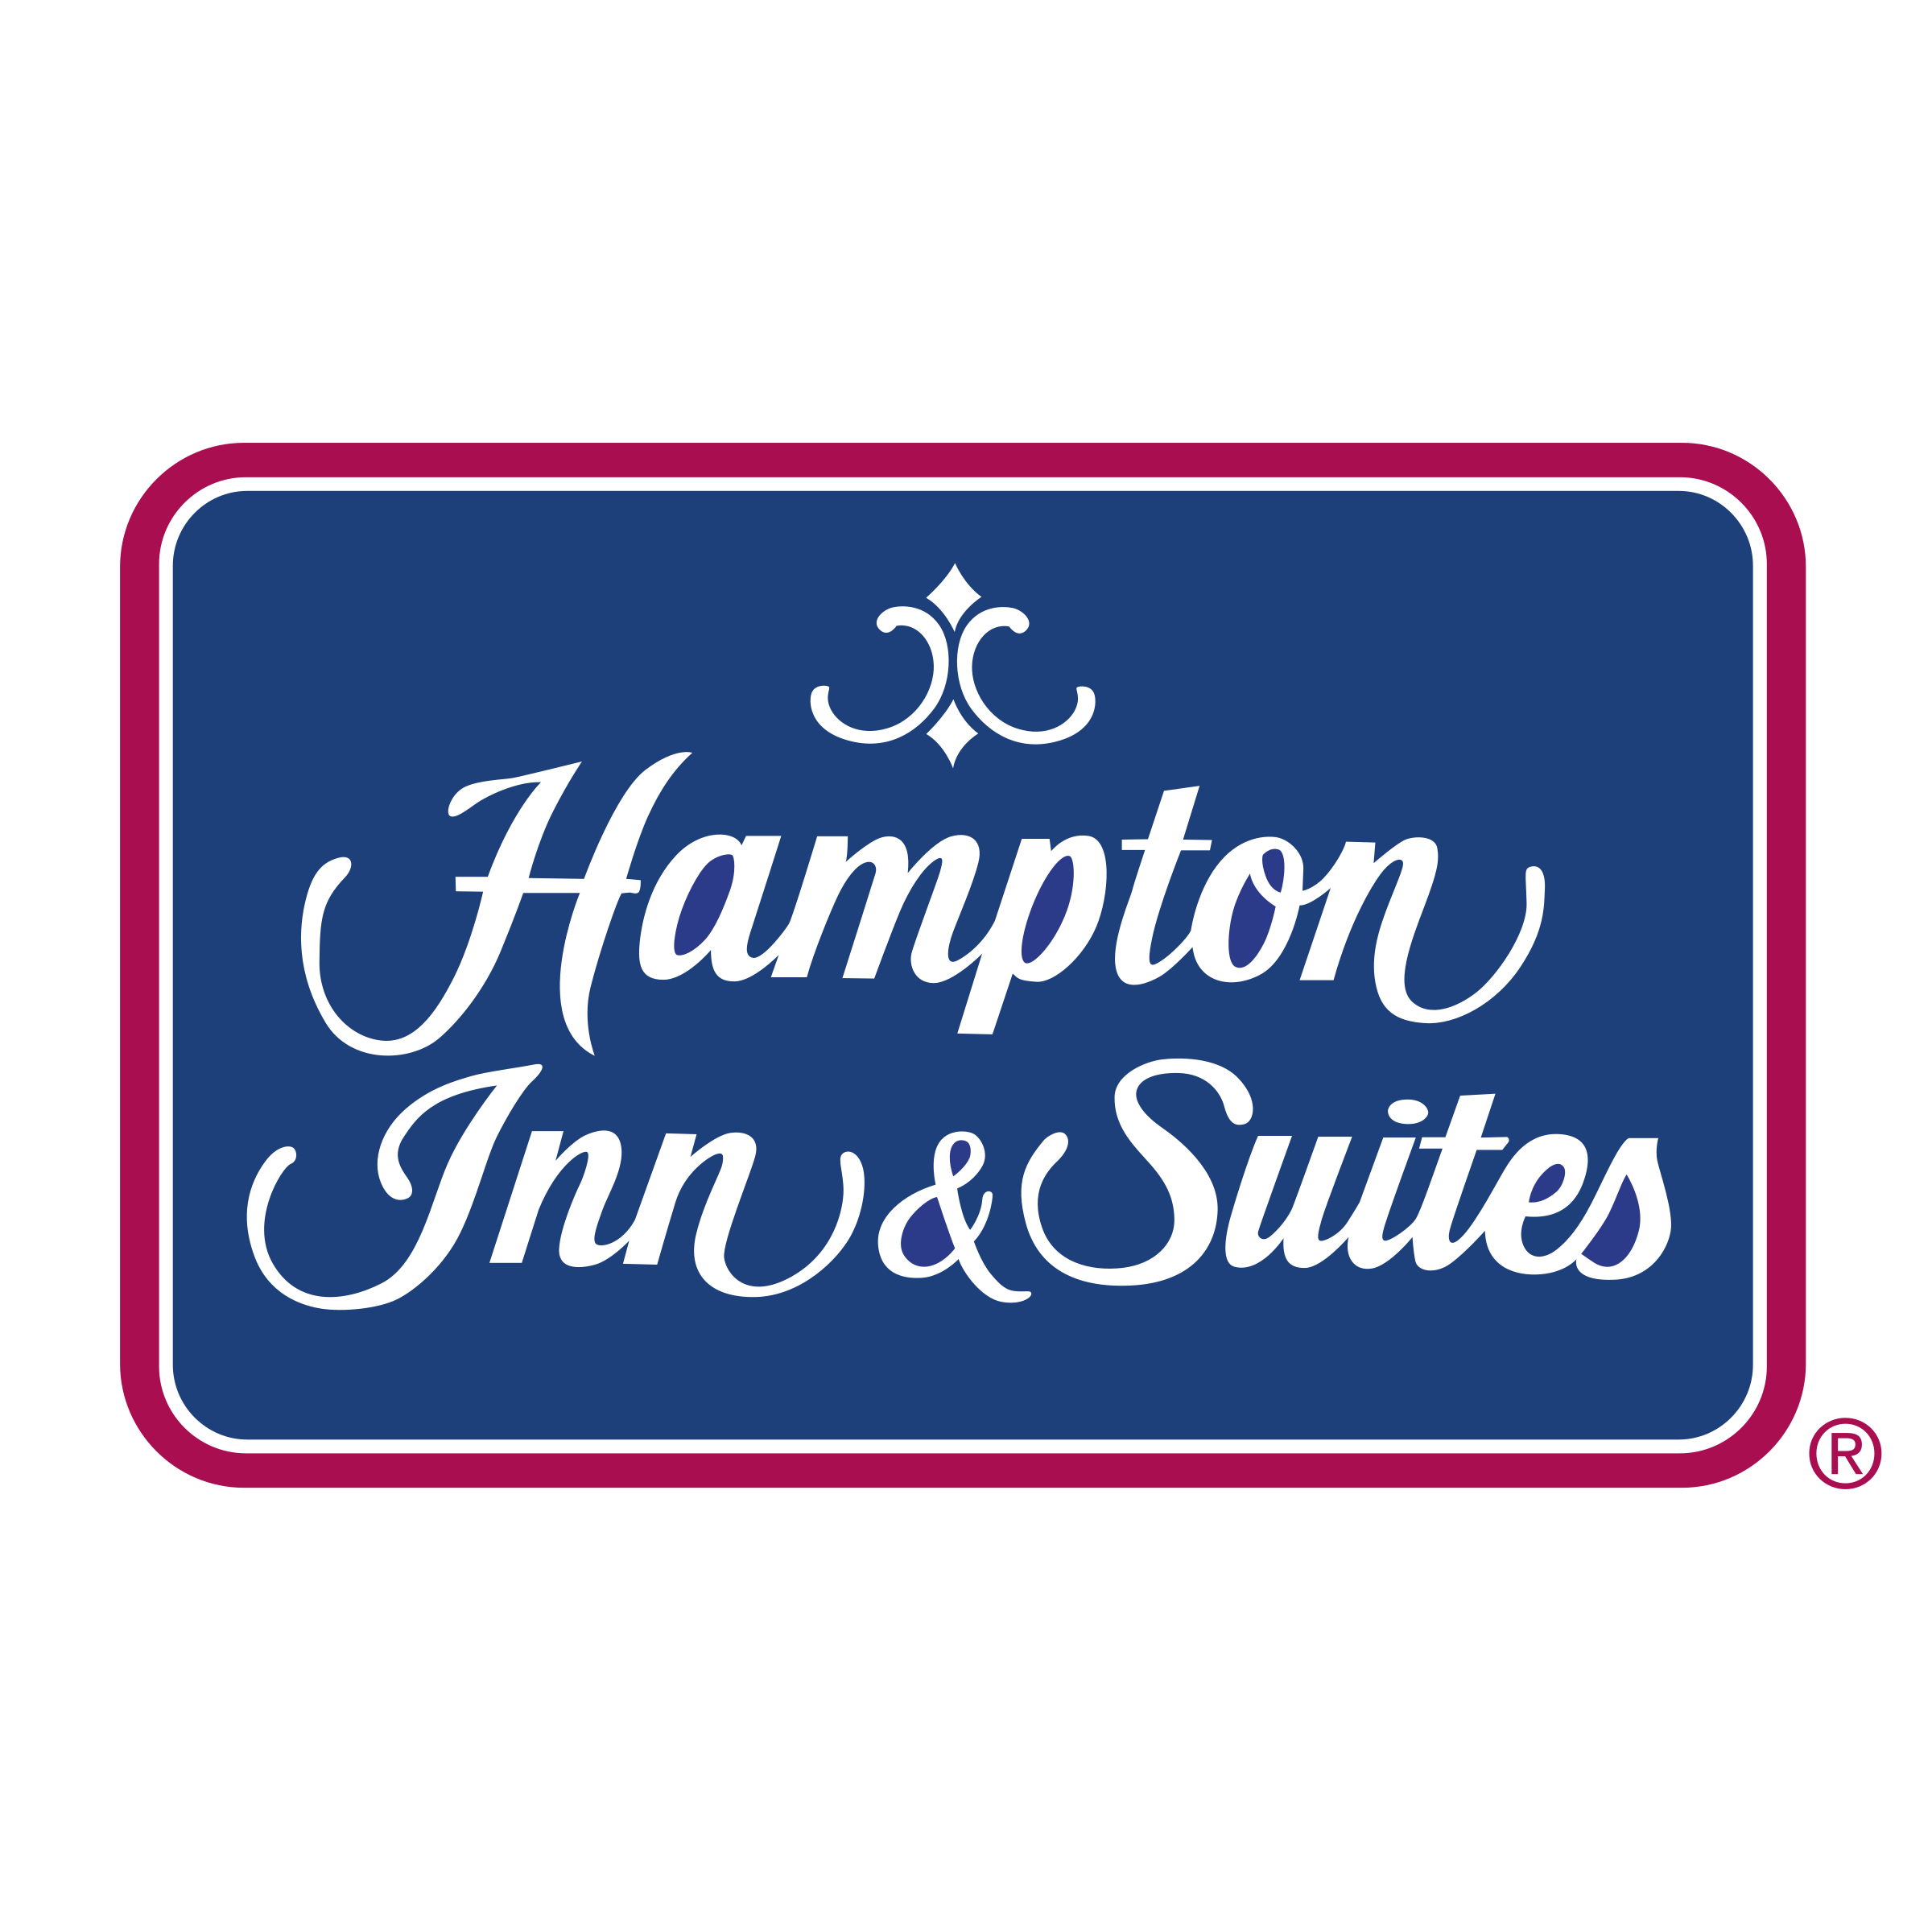 Hampton inn & suites logo png. Transparent svg vector freebie